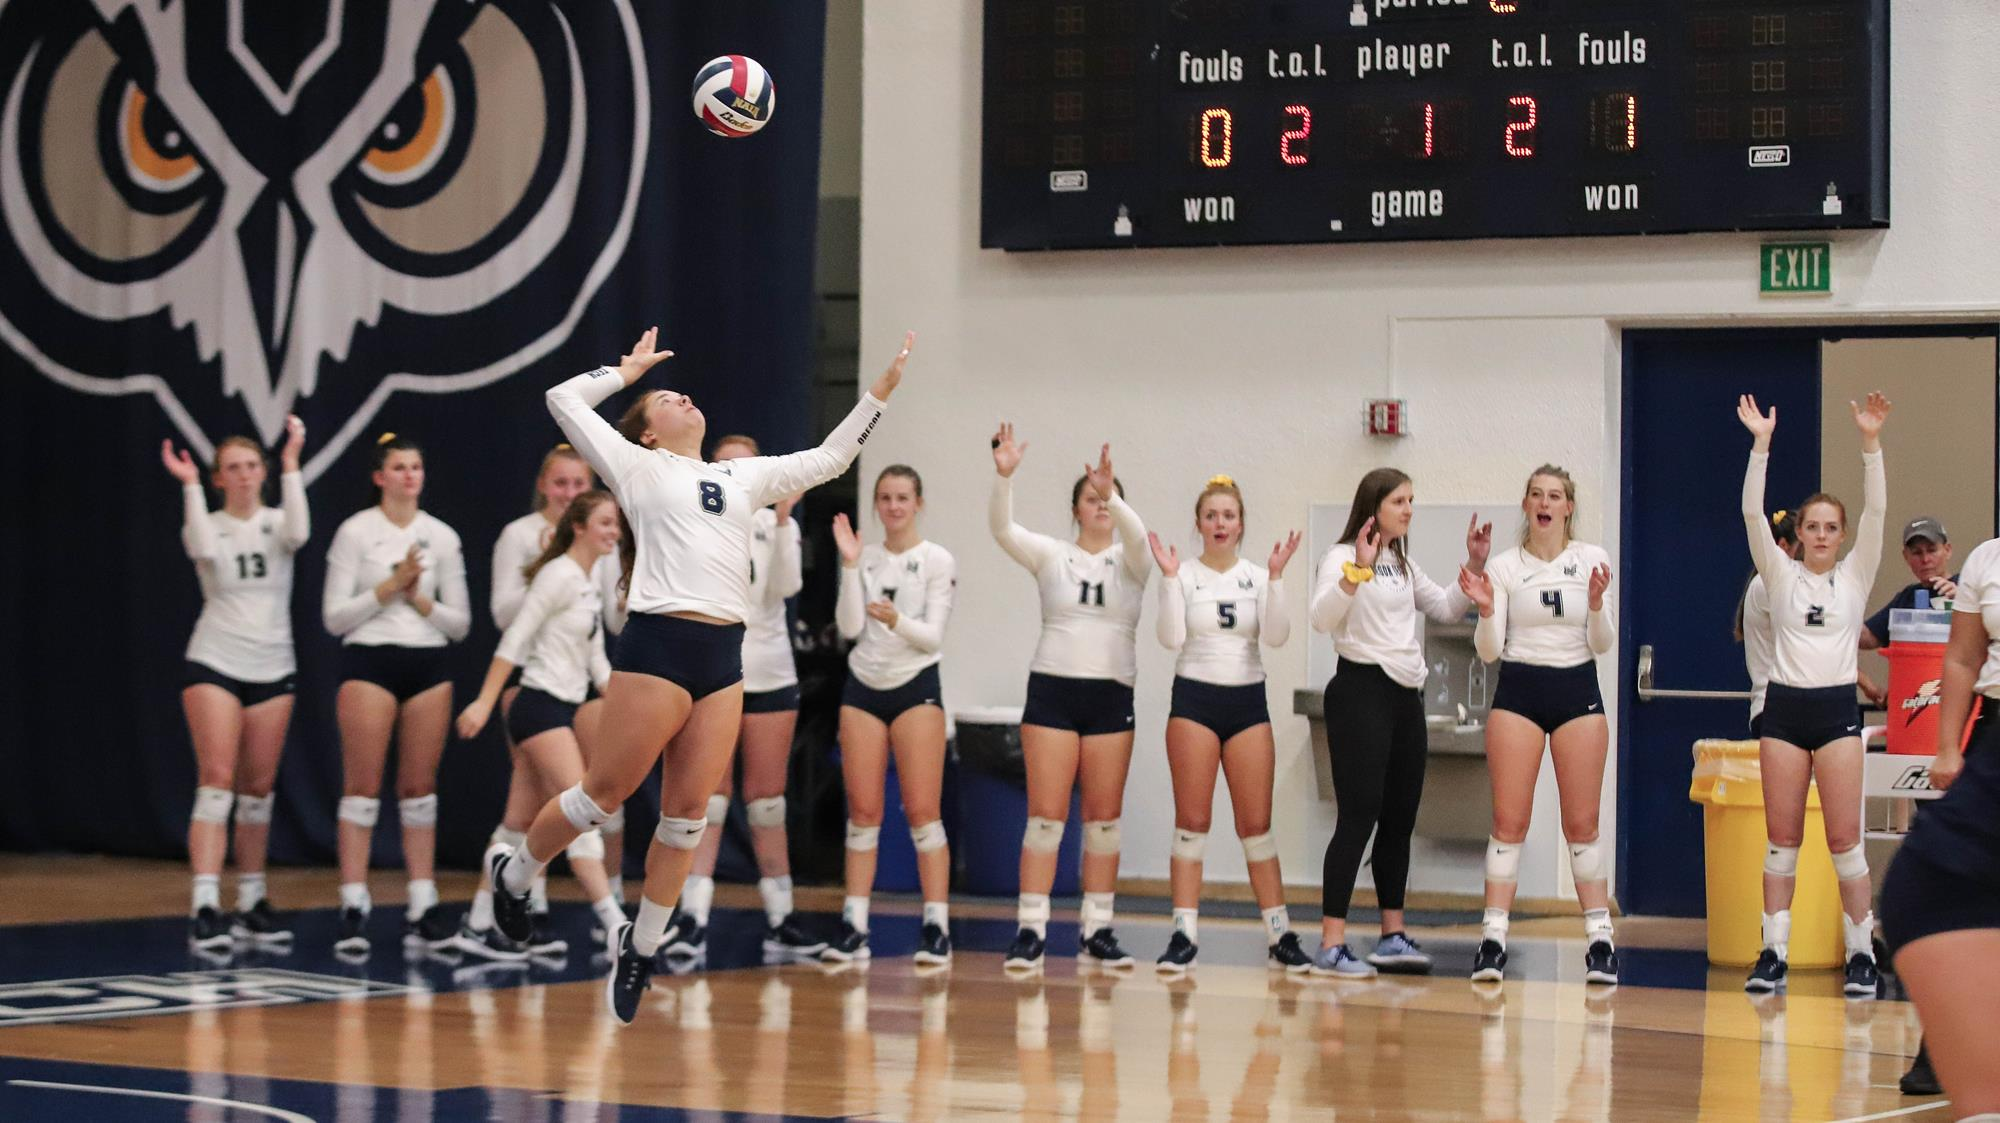 Eighth Ranked Penn State Eliminates Udvb In Ncaa Second Round University Of Dayton Volleyball News Volleyball Team